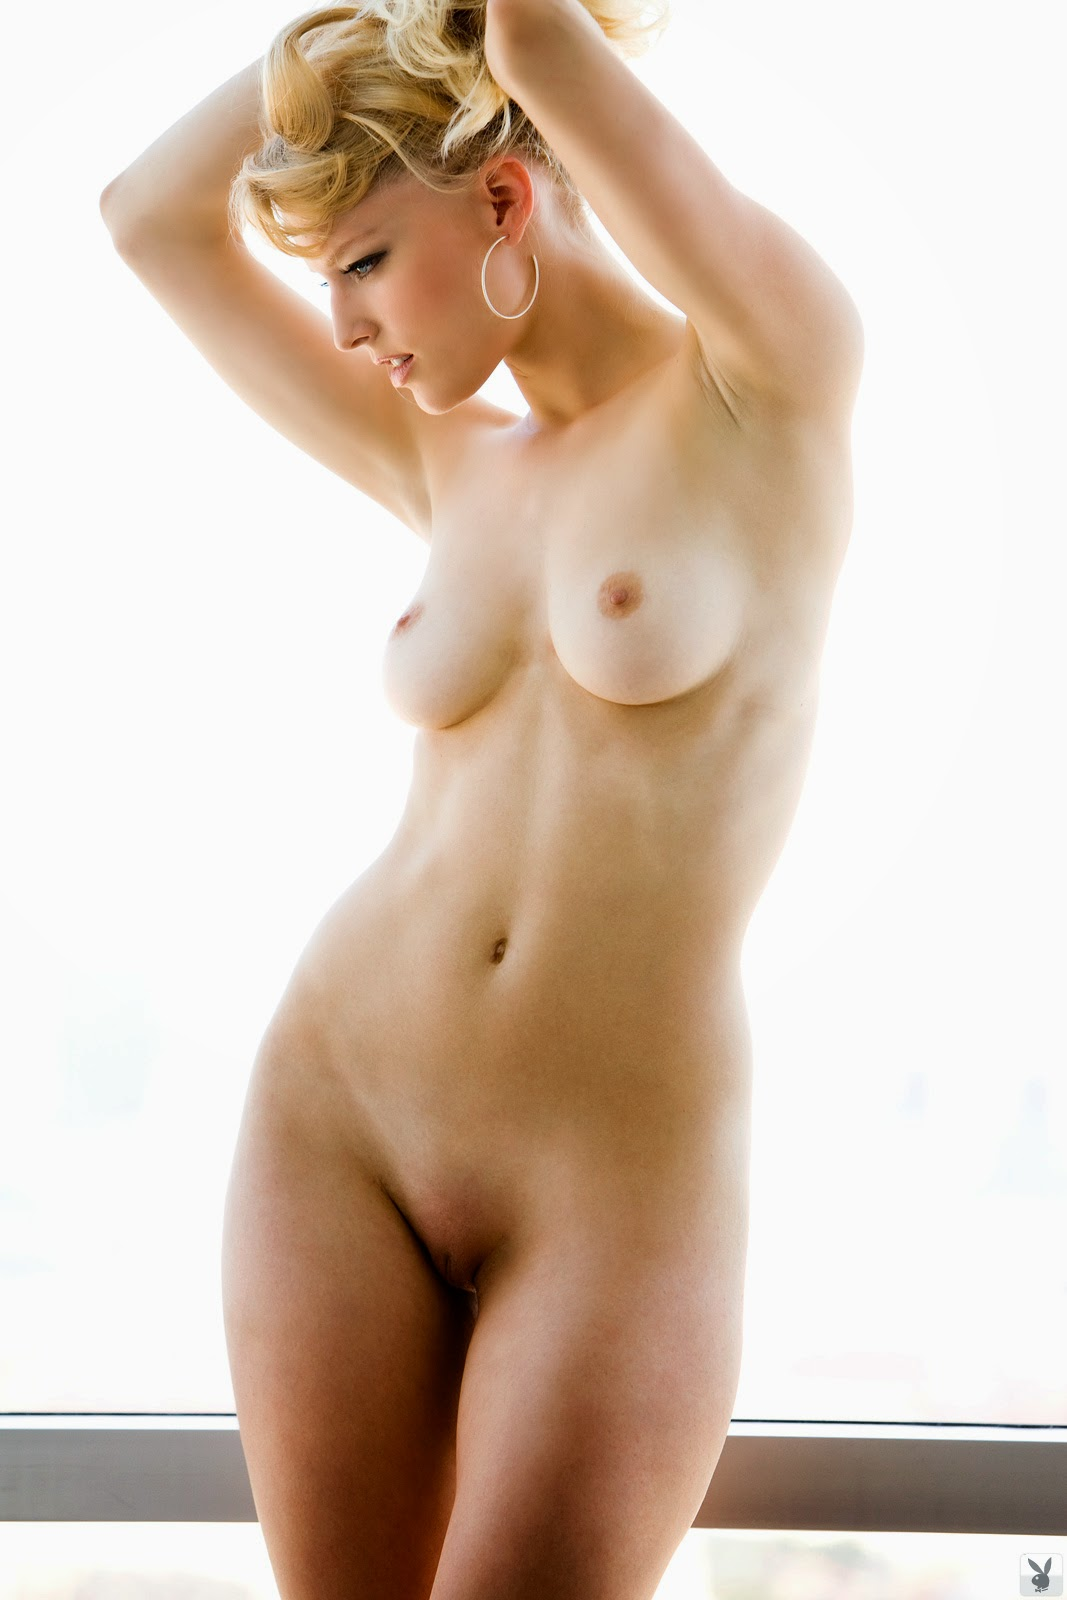 The naked pictures of linda evans